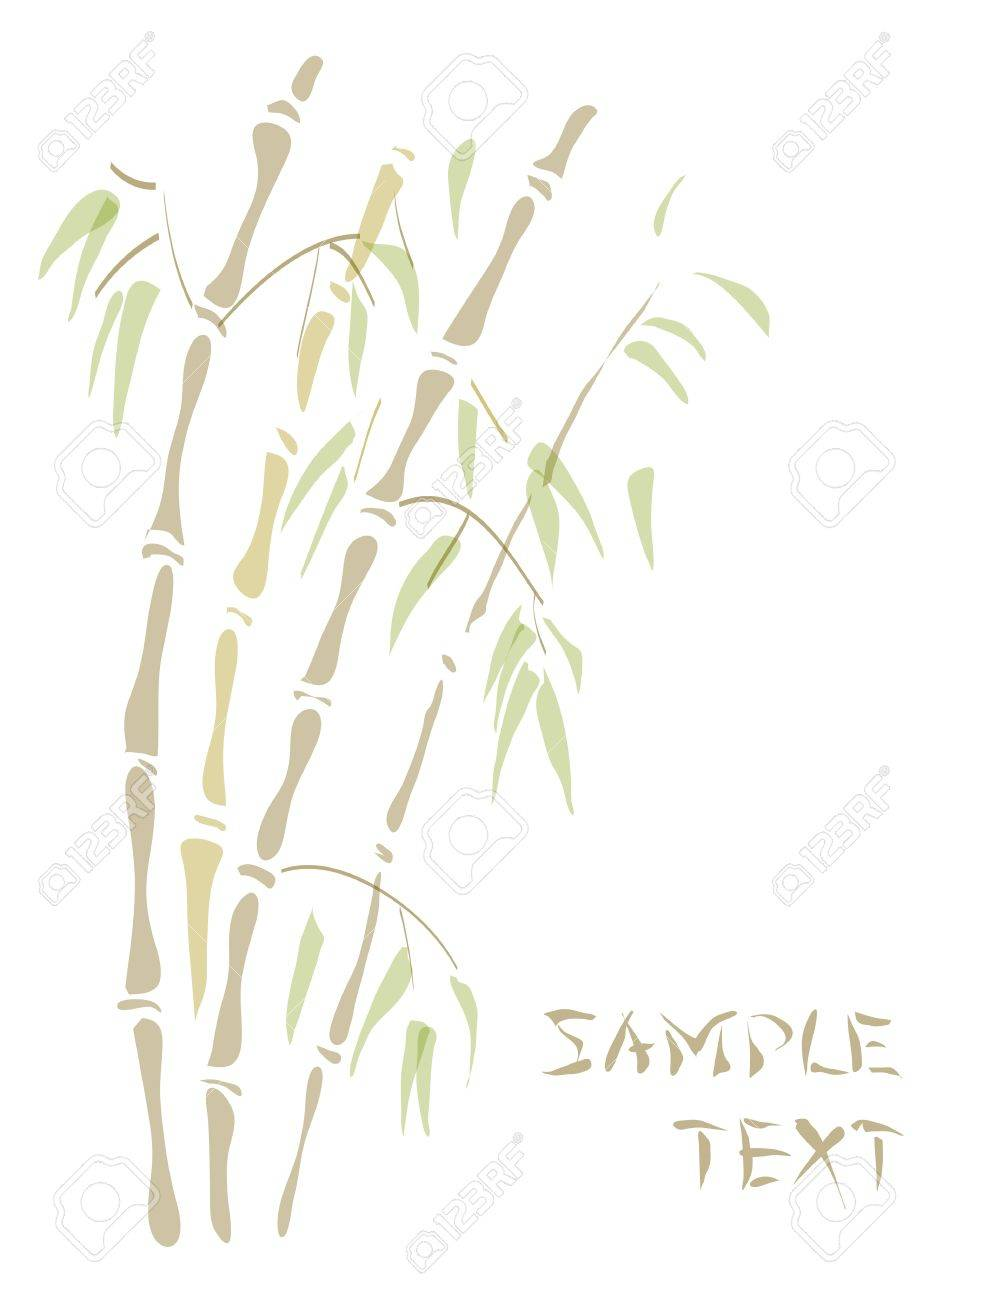 Bamboo. Watercolor style. Vector illustration. Stock Vector - 12492448